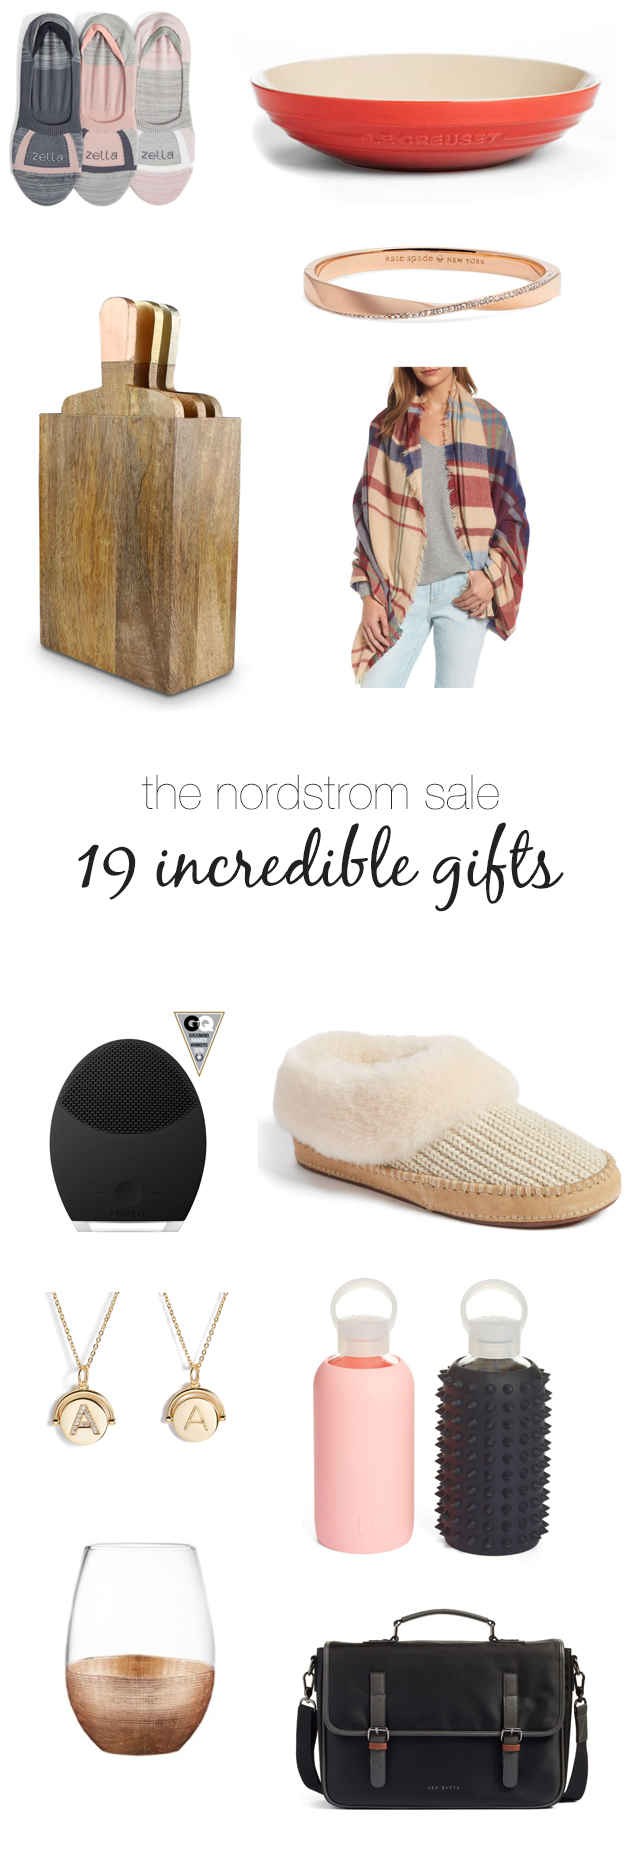 Nordstrom christmas gifts